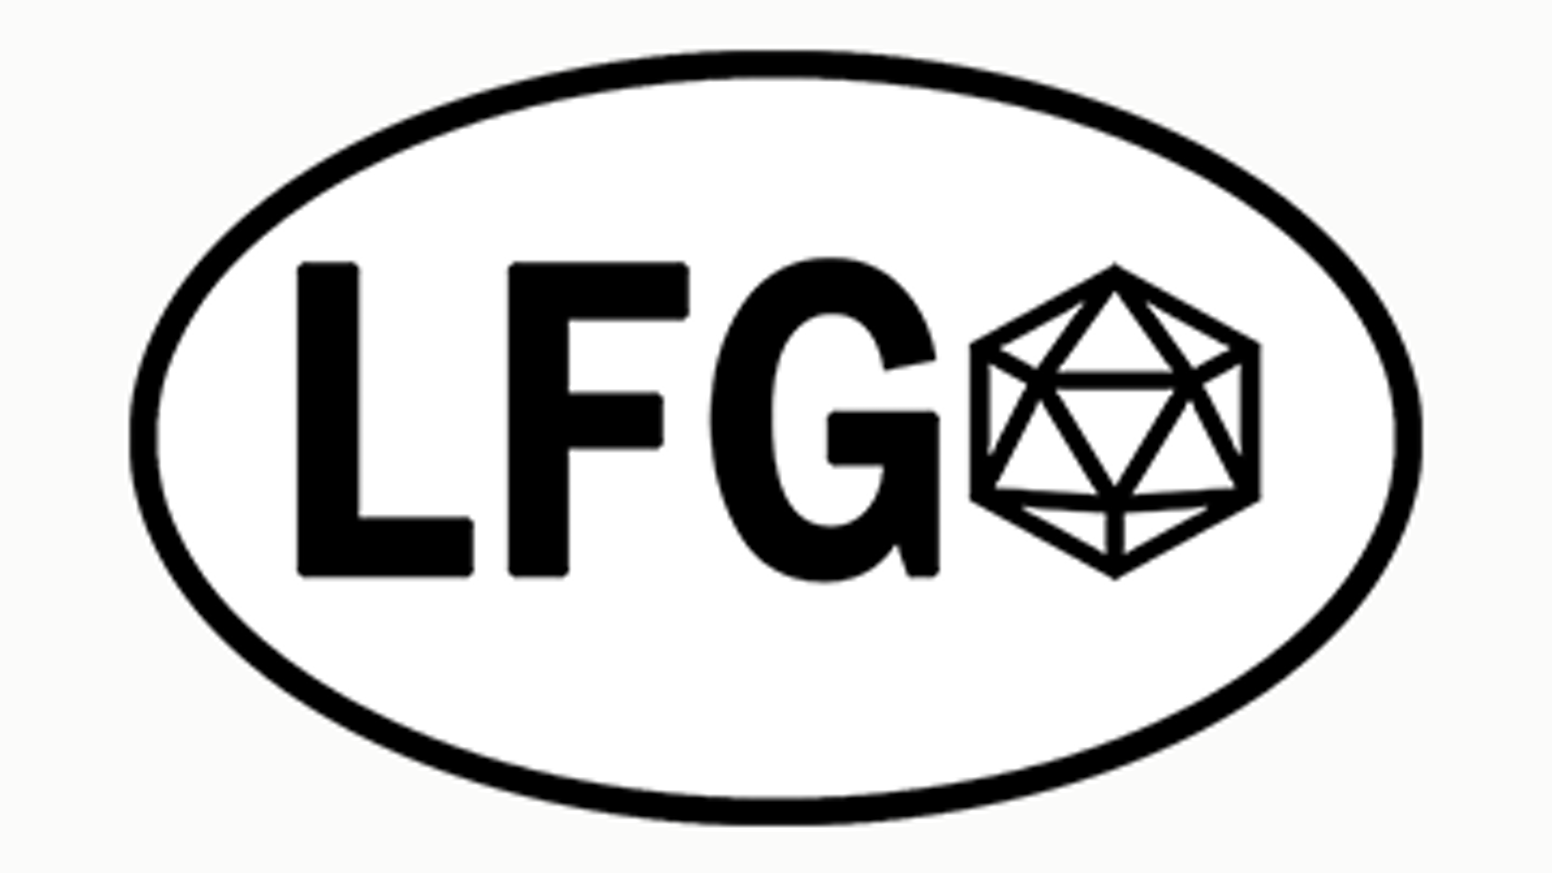 Shape Clear 2 together with Lfg Stickers And Pins For Tabletop Gamers furthermore Lds Coloring Pages Book Of Mormon together with 8820 W Westlawn St Wichita Ks 67212 2 besides H076. on lexington home theater